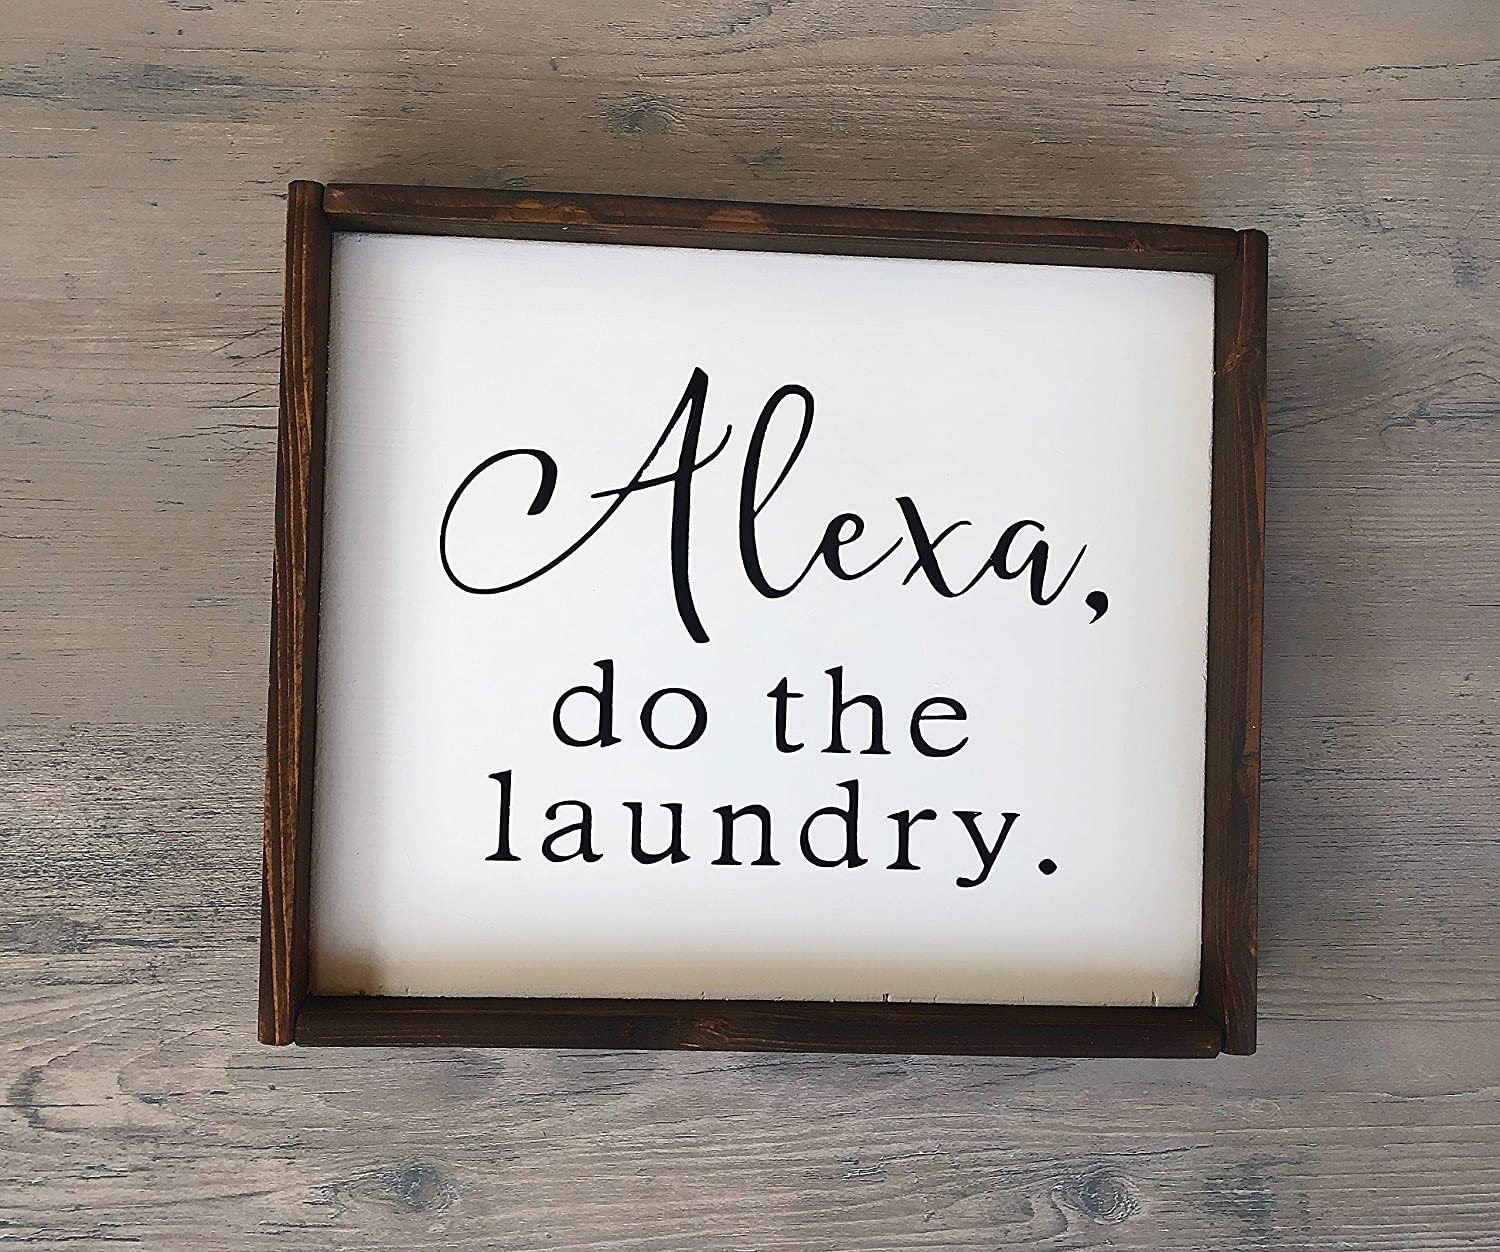 Wood Framed Sign 16x20'' Alexa Do The Laundry Sign Home Decor Handmade Sign Wooden Sign Laundry Interior Sign Rustic Decor Farmhouse Alexa Gift